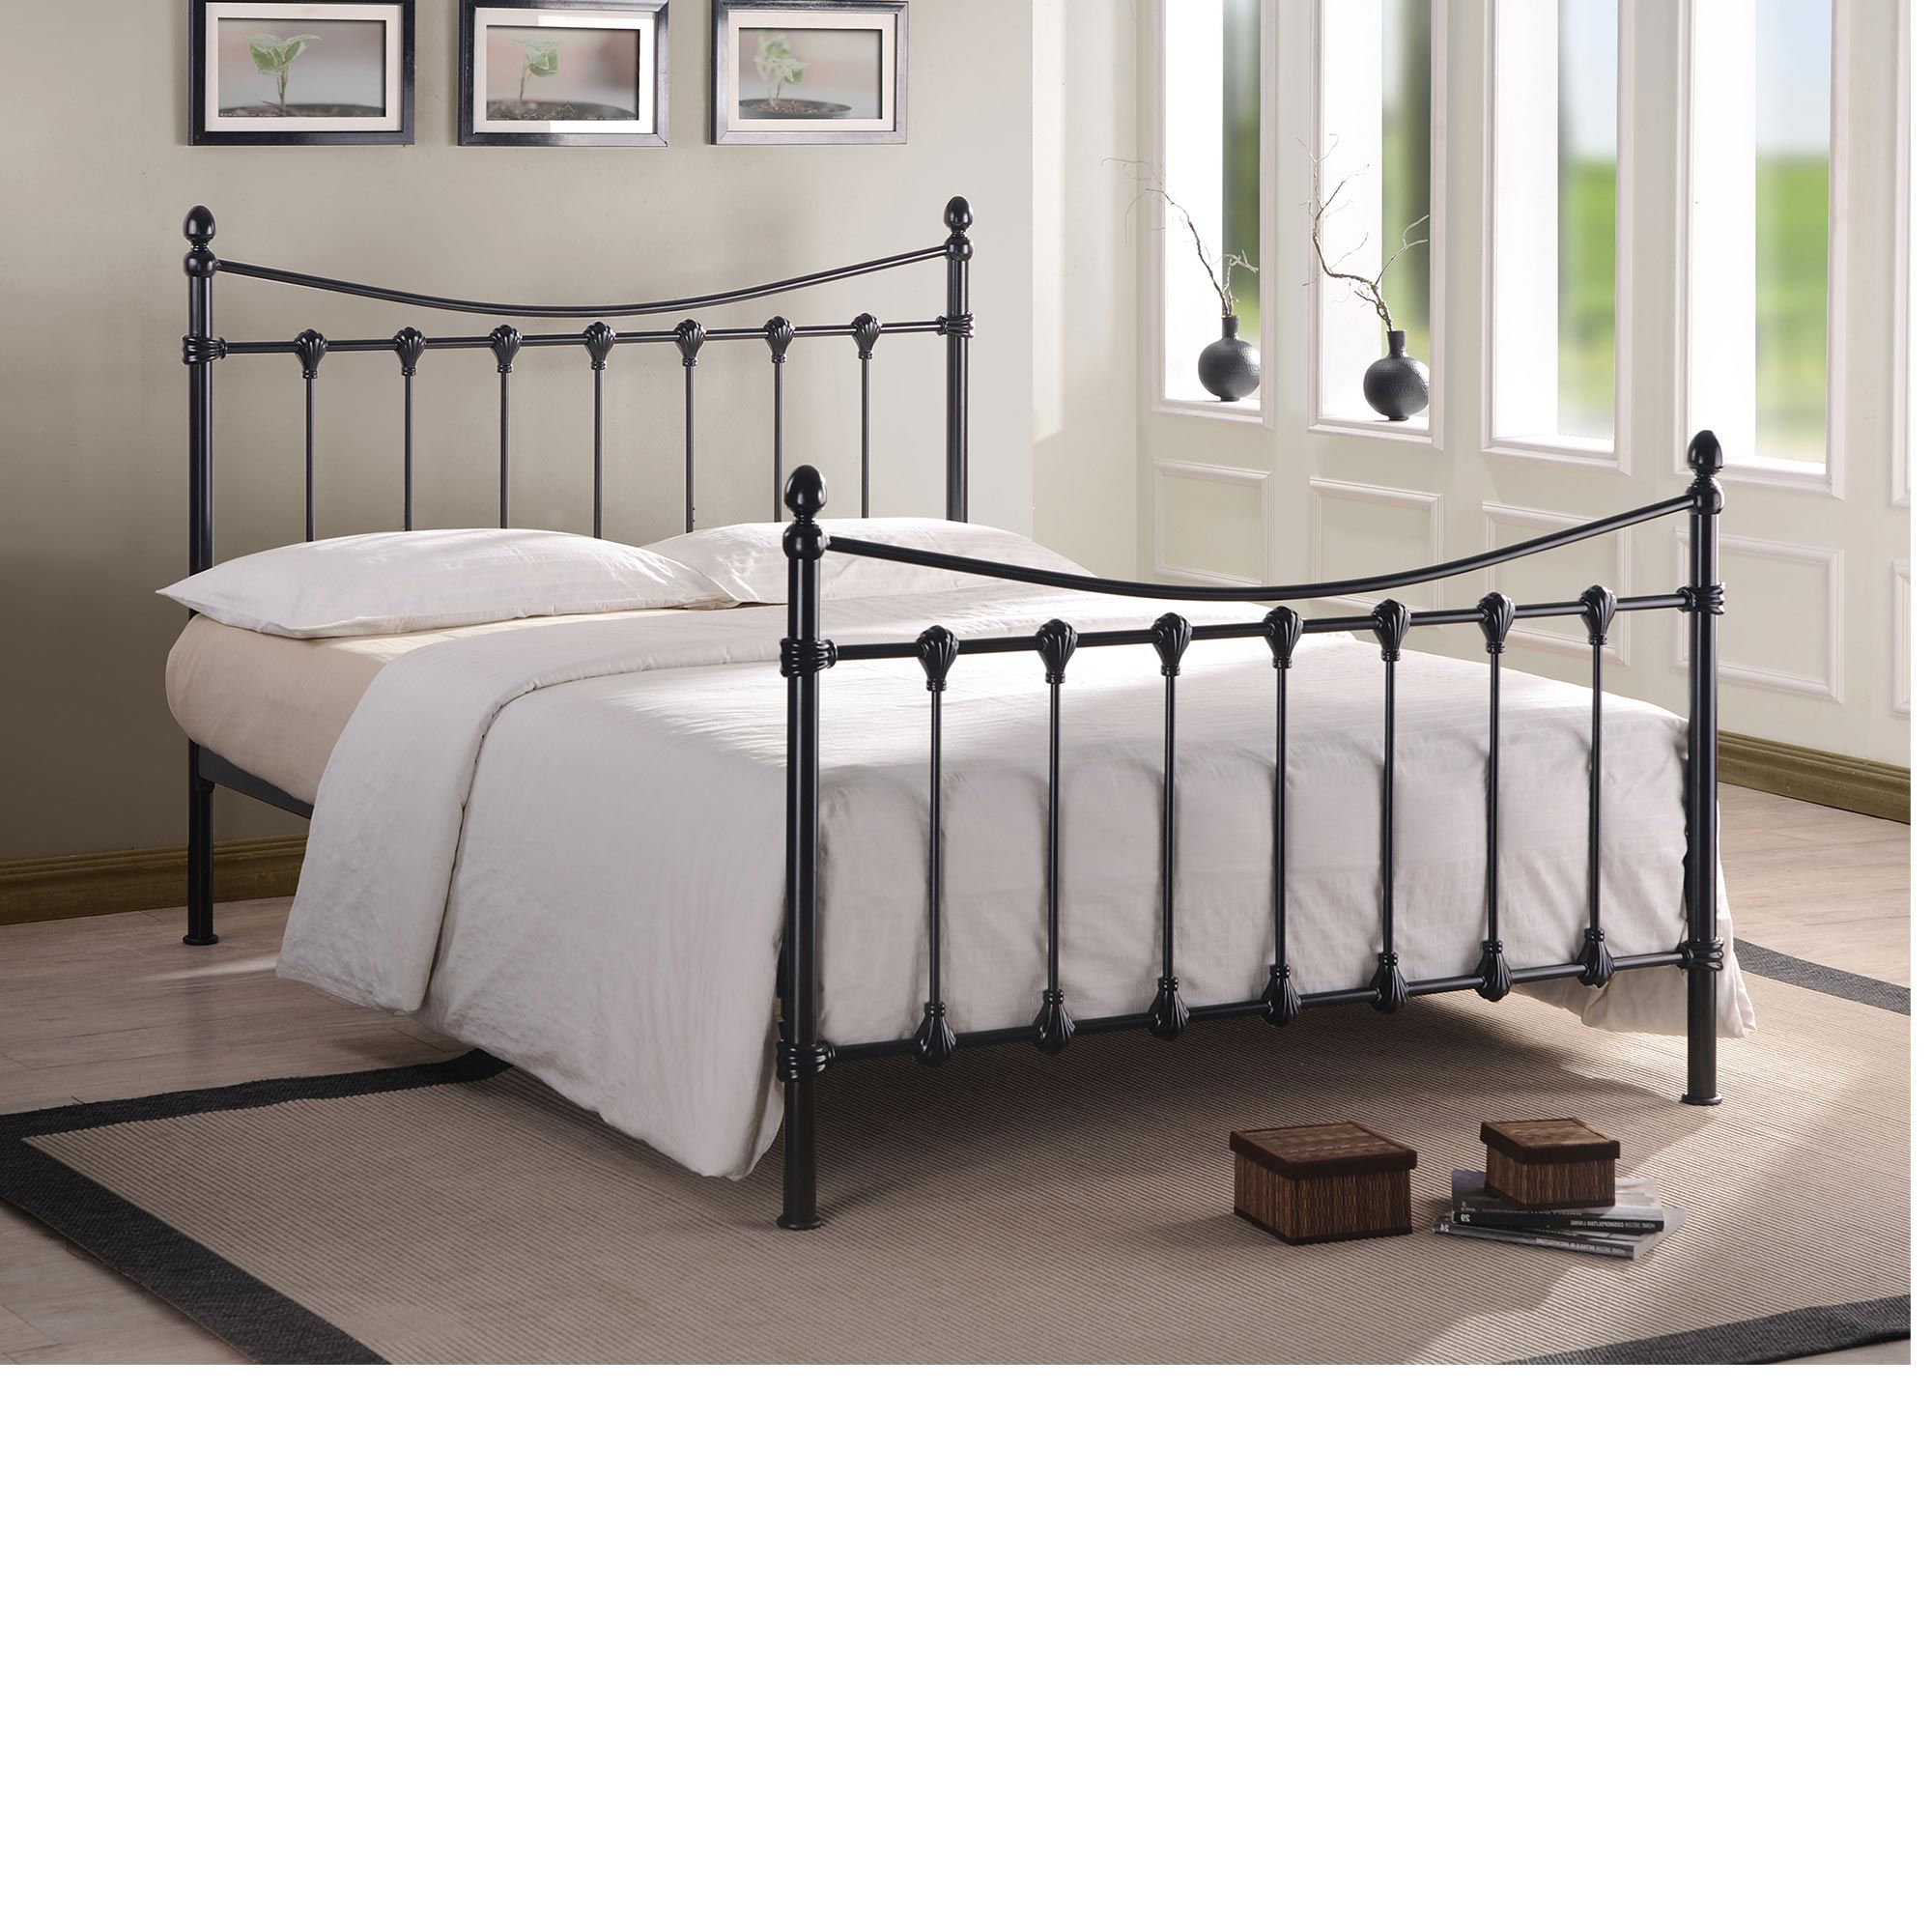 Bed City Block White Metal Frame